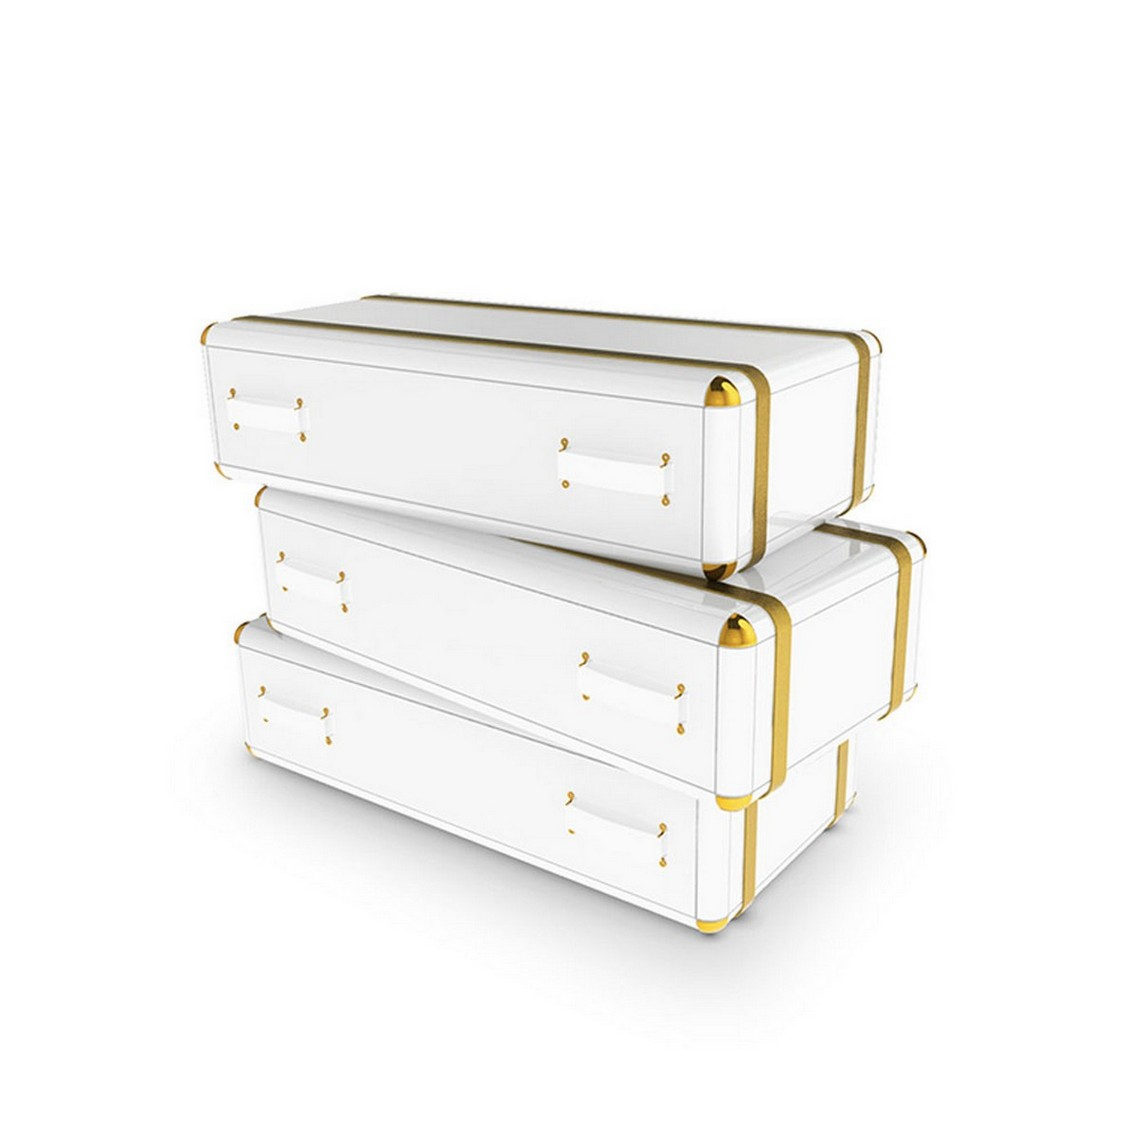 Contemporary Luxury Chests contemporary luxury chests Contemporary Luxury Chests fantasayair3